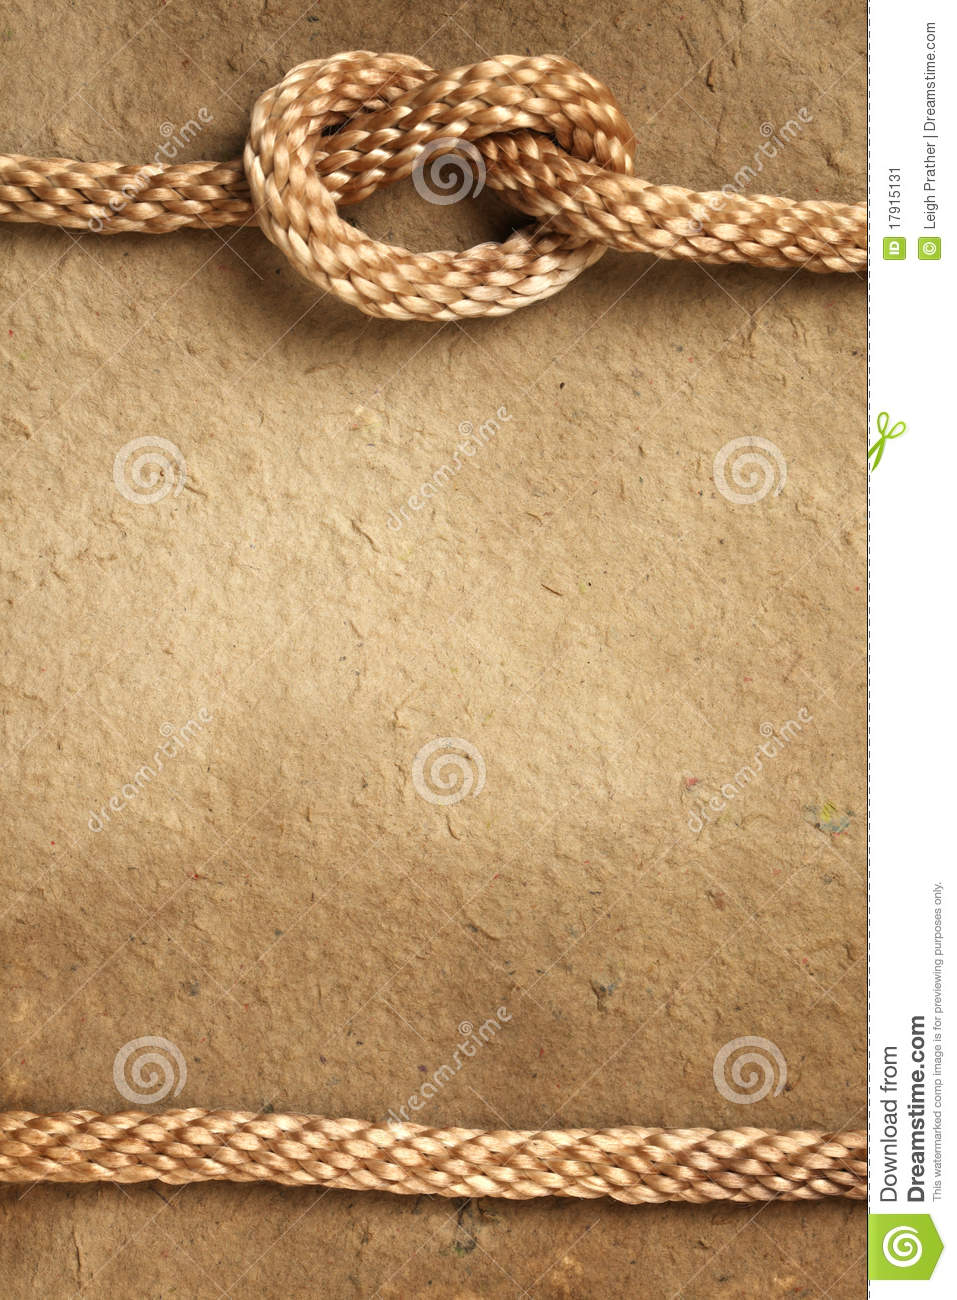 Paper With Rope Border Stock Image  Image 17915131